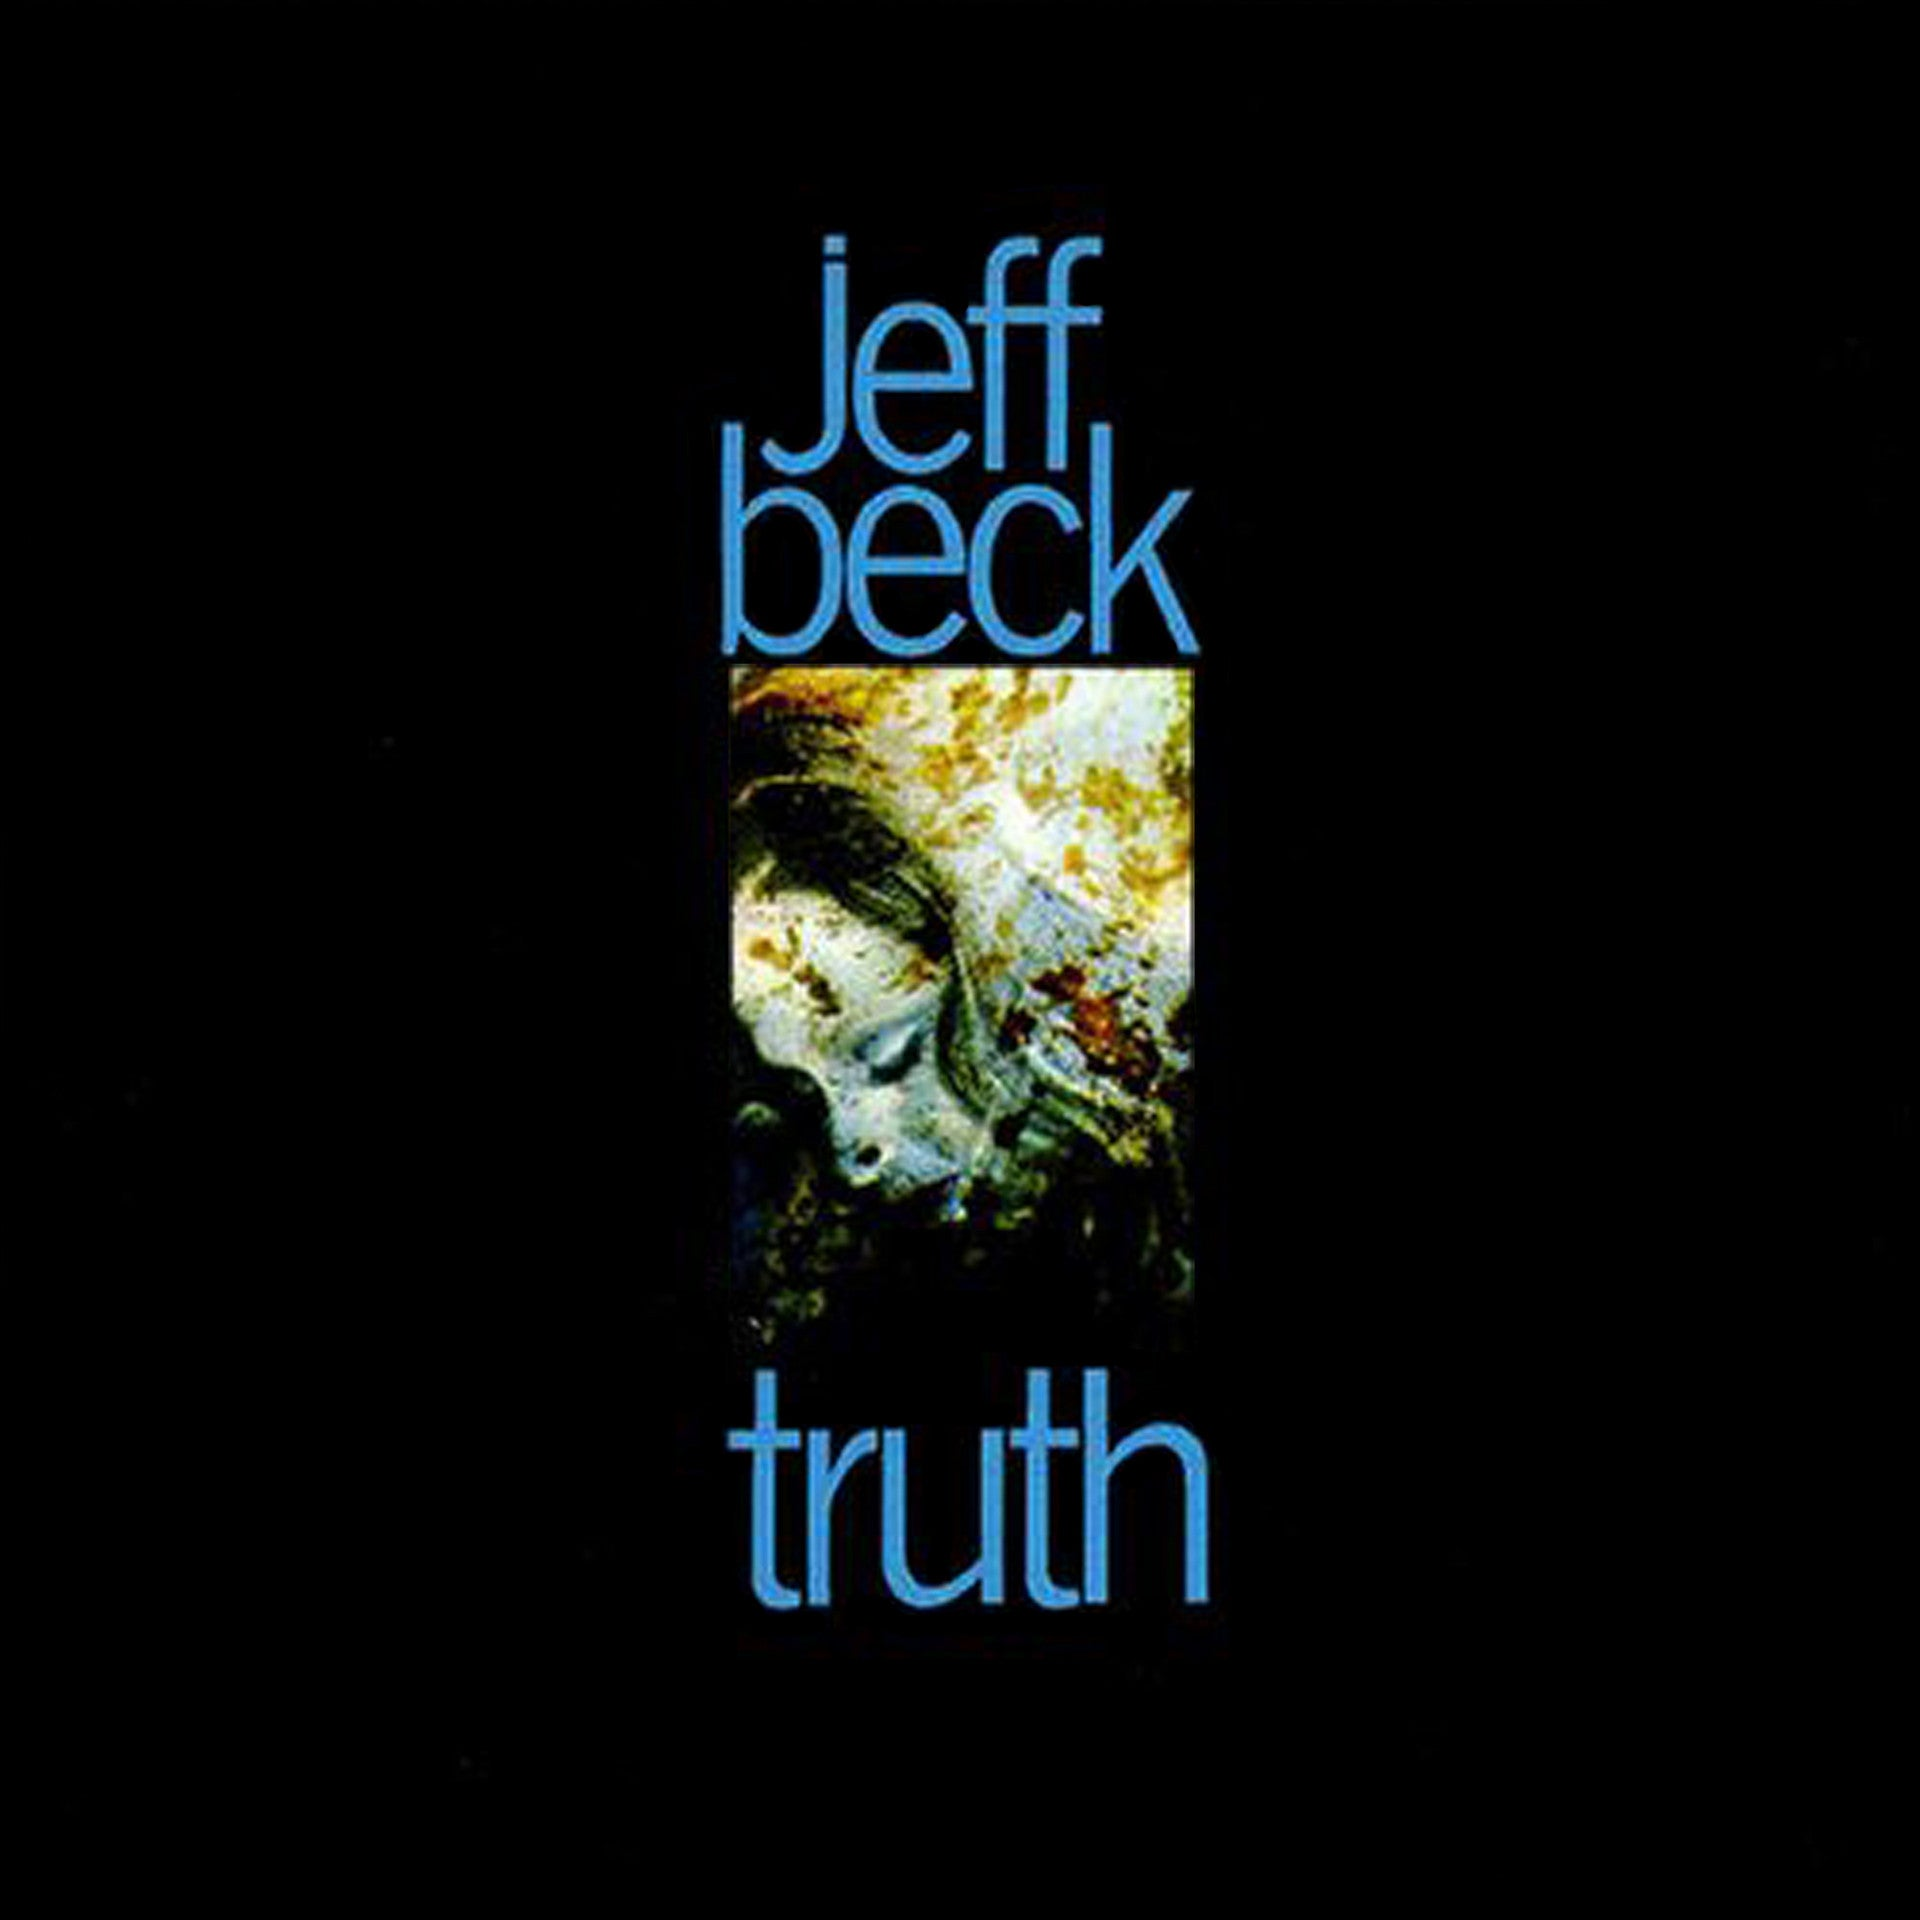 BECK JEFF-TRUTH LP *NEW*